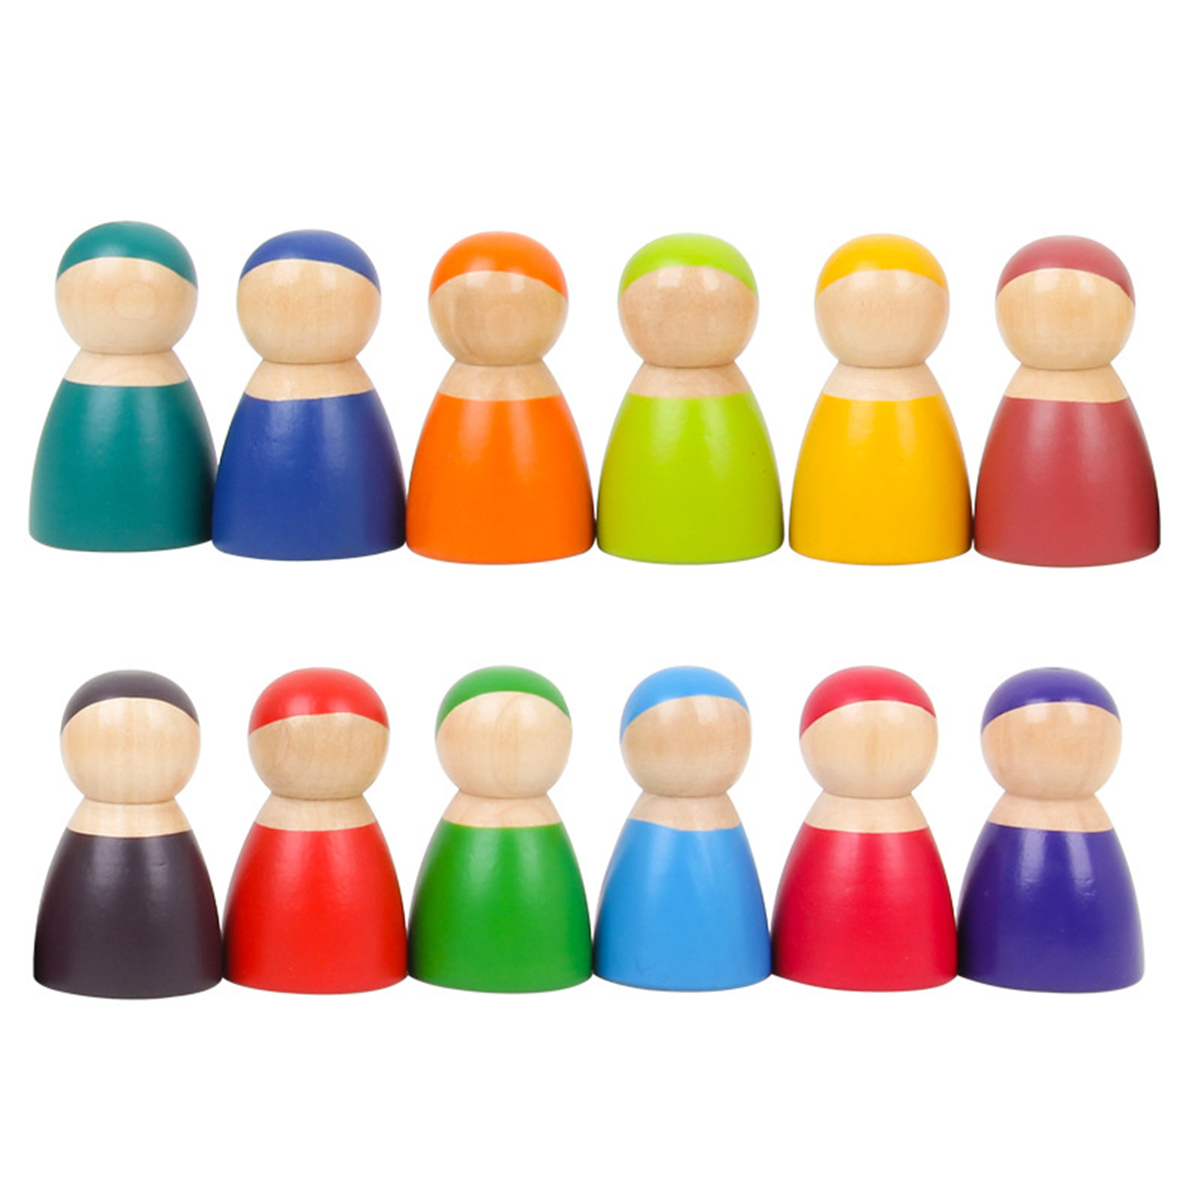 Montessori Set Of 12 Rainbow Friends Peg Dolls Wooden Pretend Play People Figures Baby Toy Environmental Safety Paint